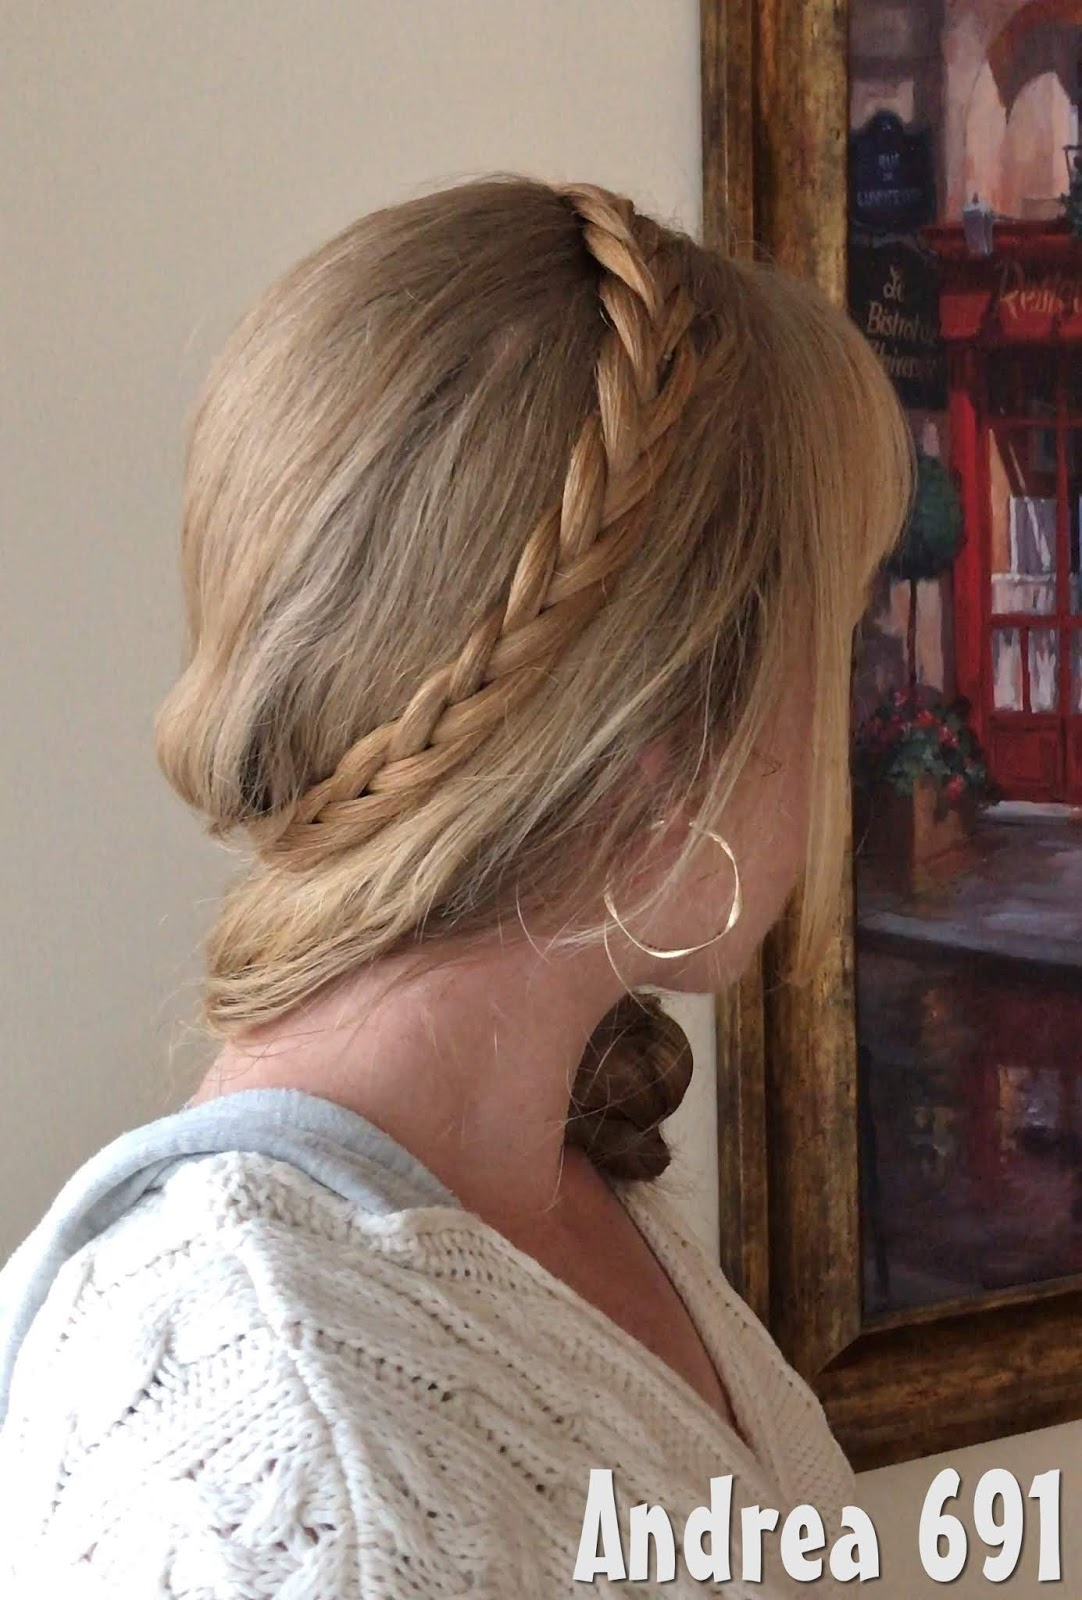 Braids Hairstyles For Super Long Hair Simple Braided Hairstyle